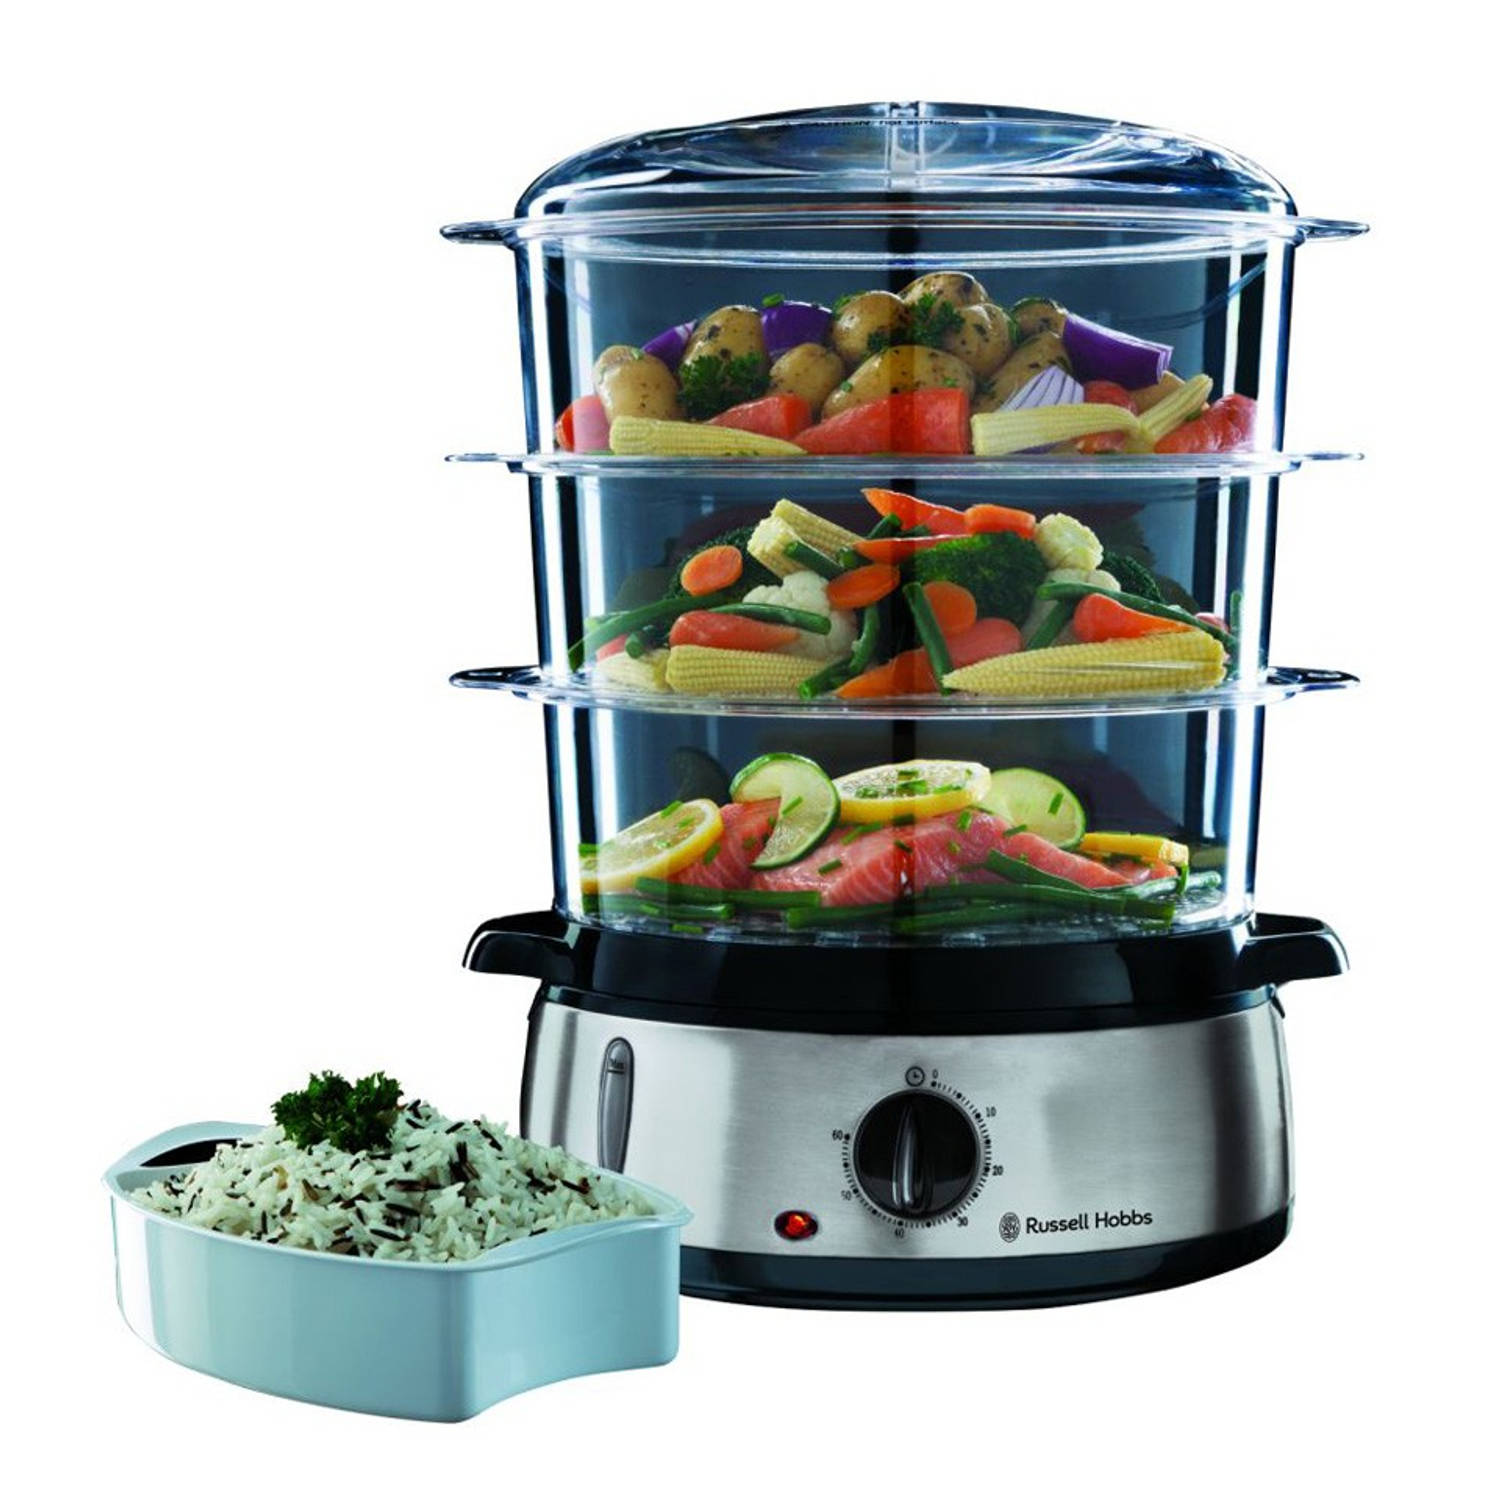 Russell Hobbs stoomkoker Cook@Home 19270-56